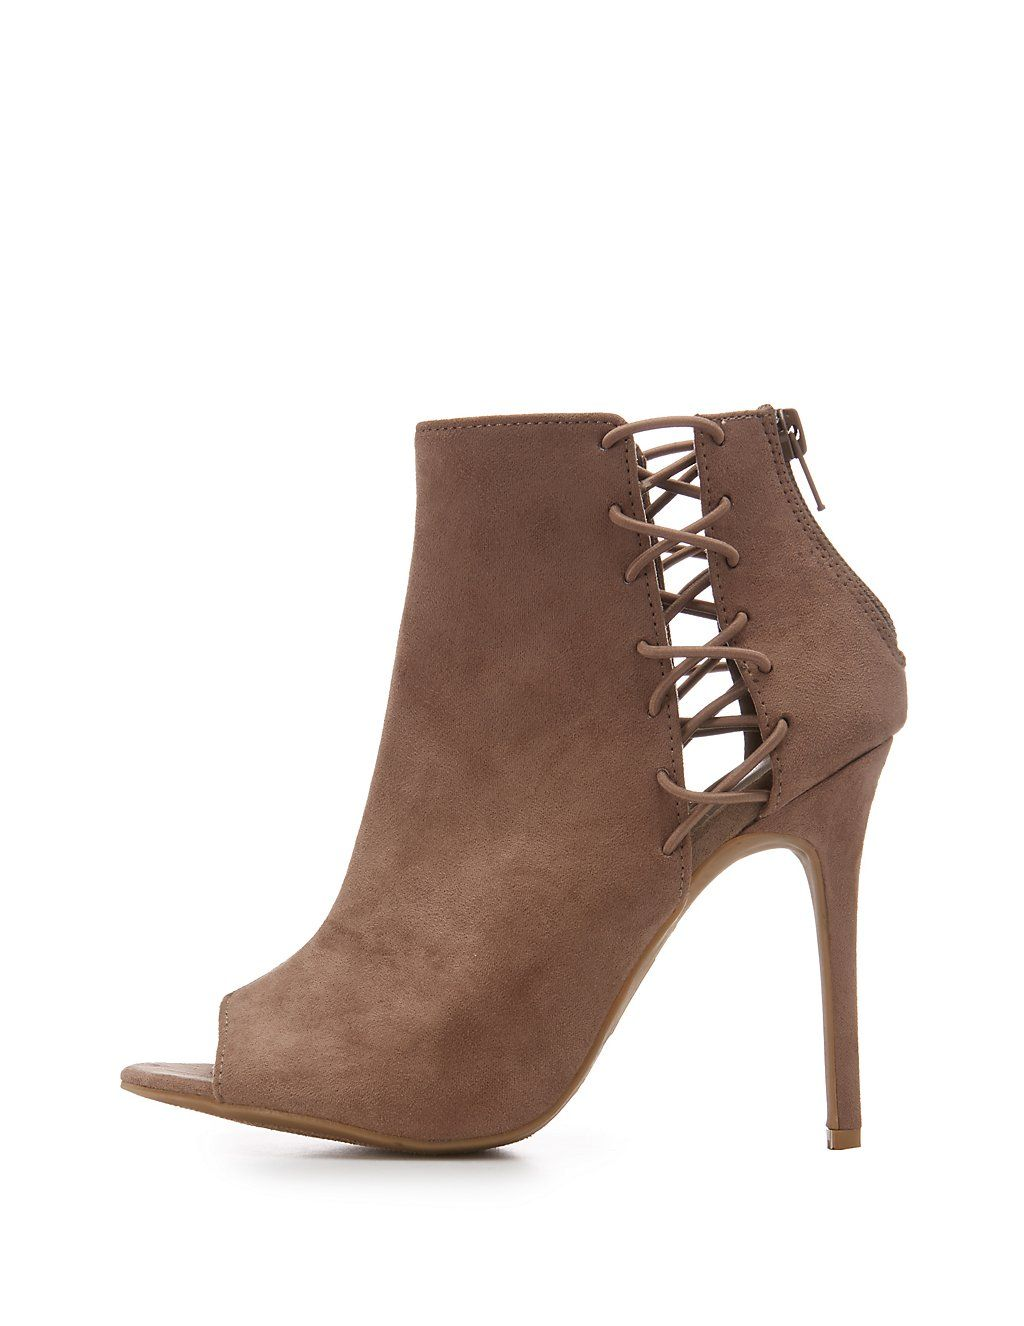 5c2c88596a020 Faux Suede Caged Peep Toe Booties